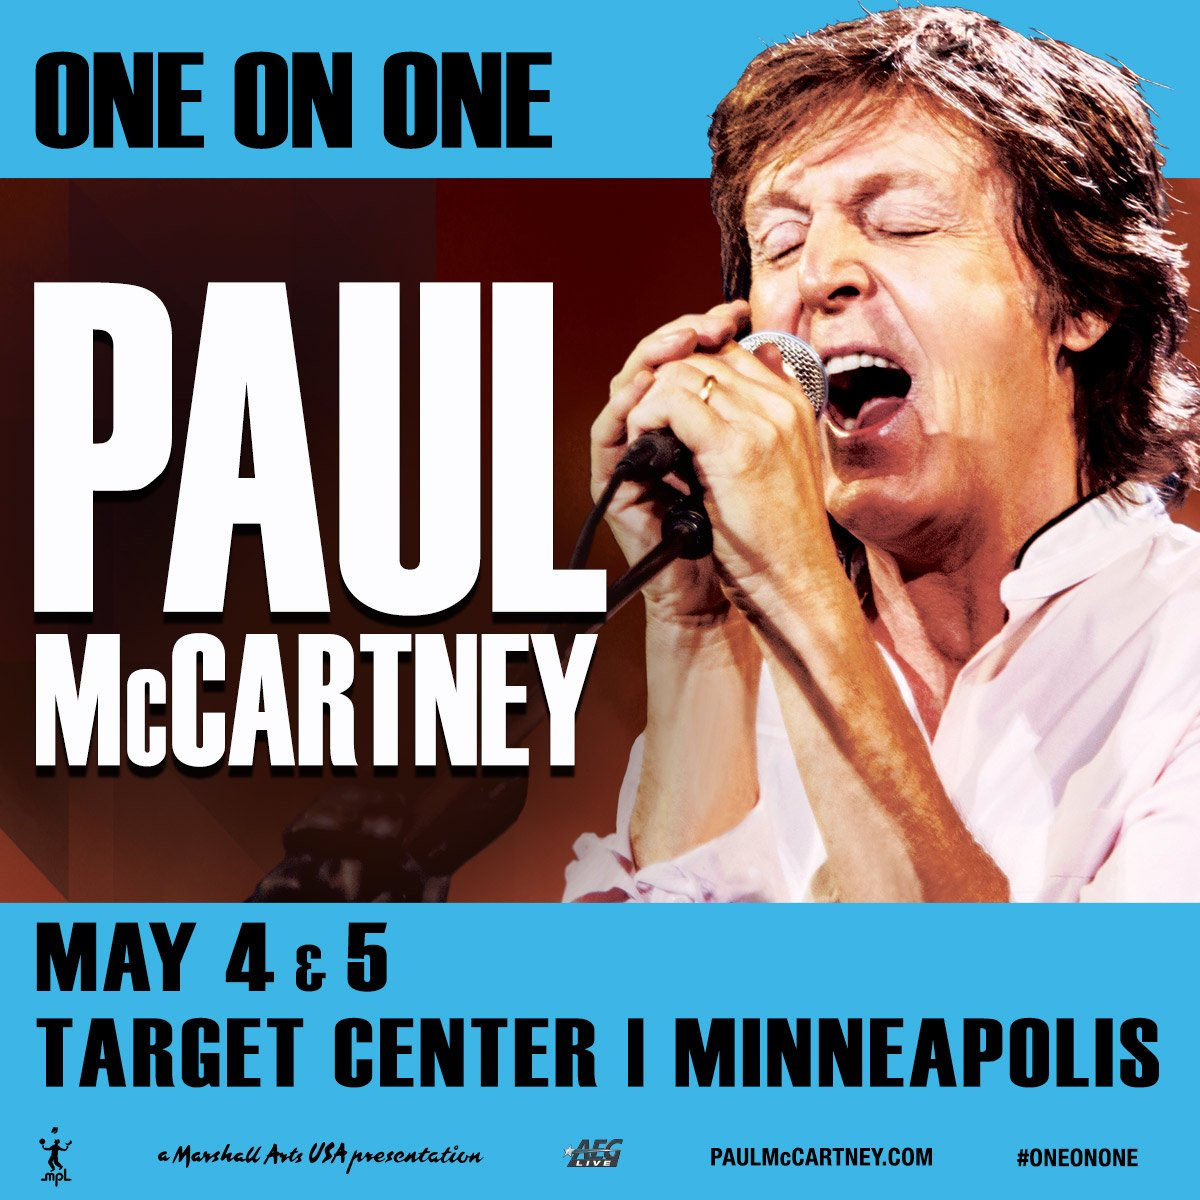 You have one more chance at a pair of @PaulMcCartney tix for his two-night stand at @TargetCenterMN. RT now to win. https://t.co/0LkEsGUGr5